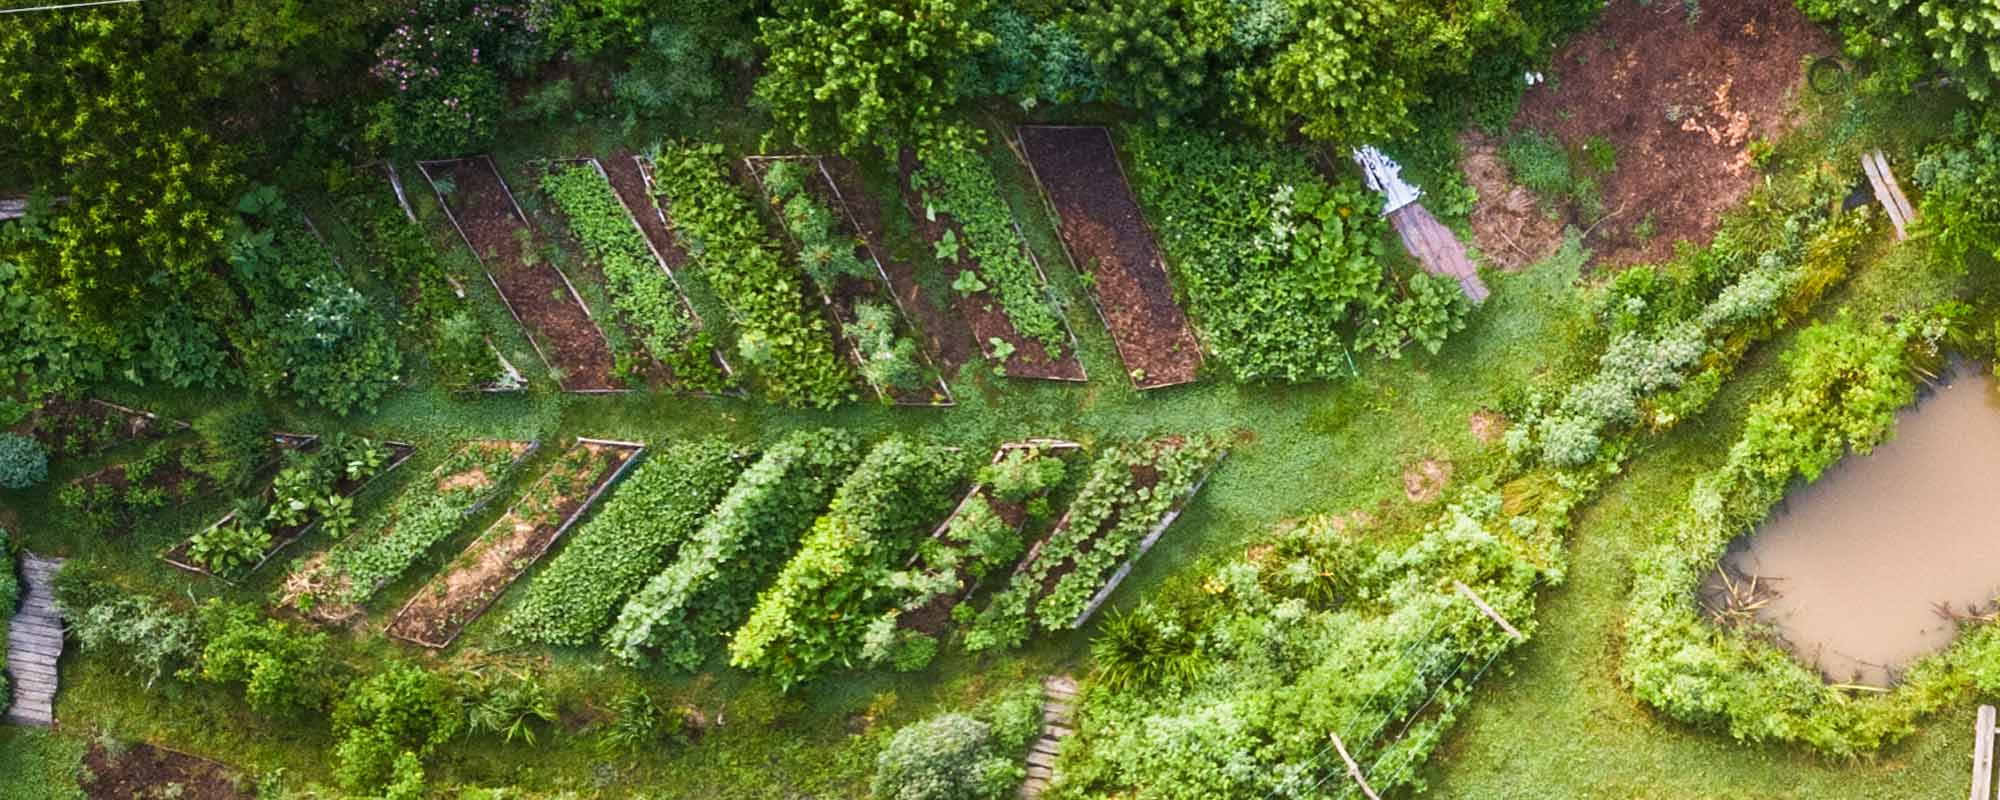 aerial view of leaf shaped garden